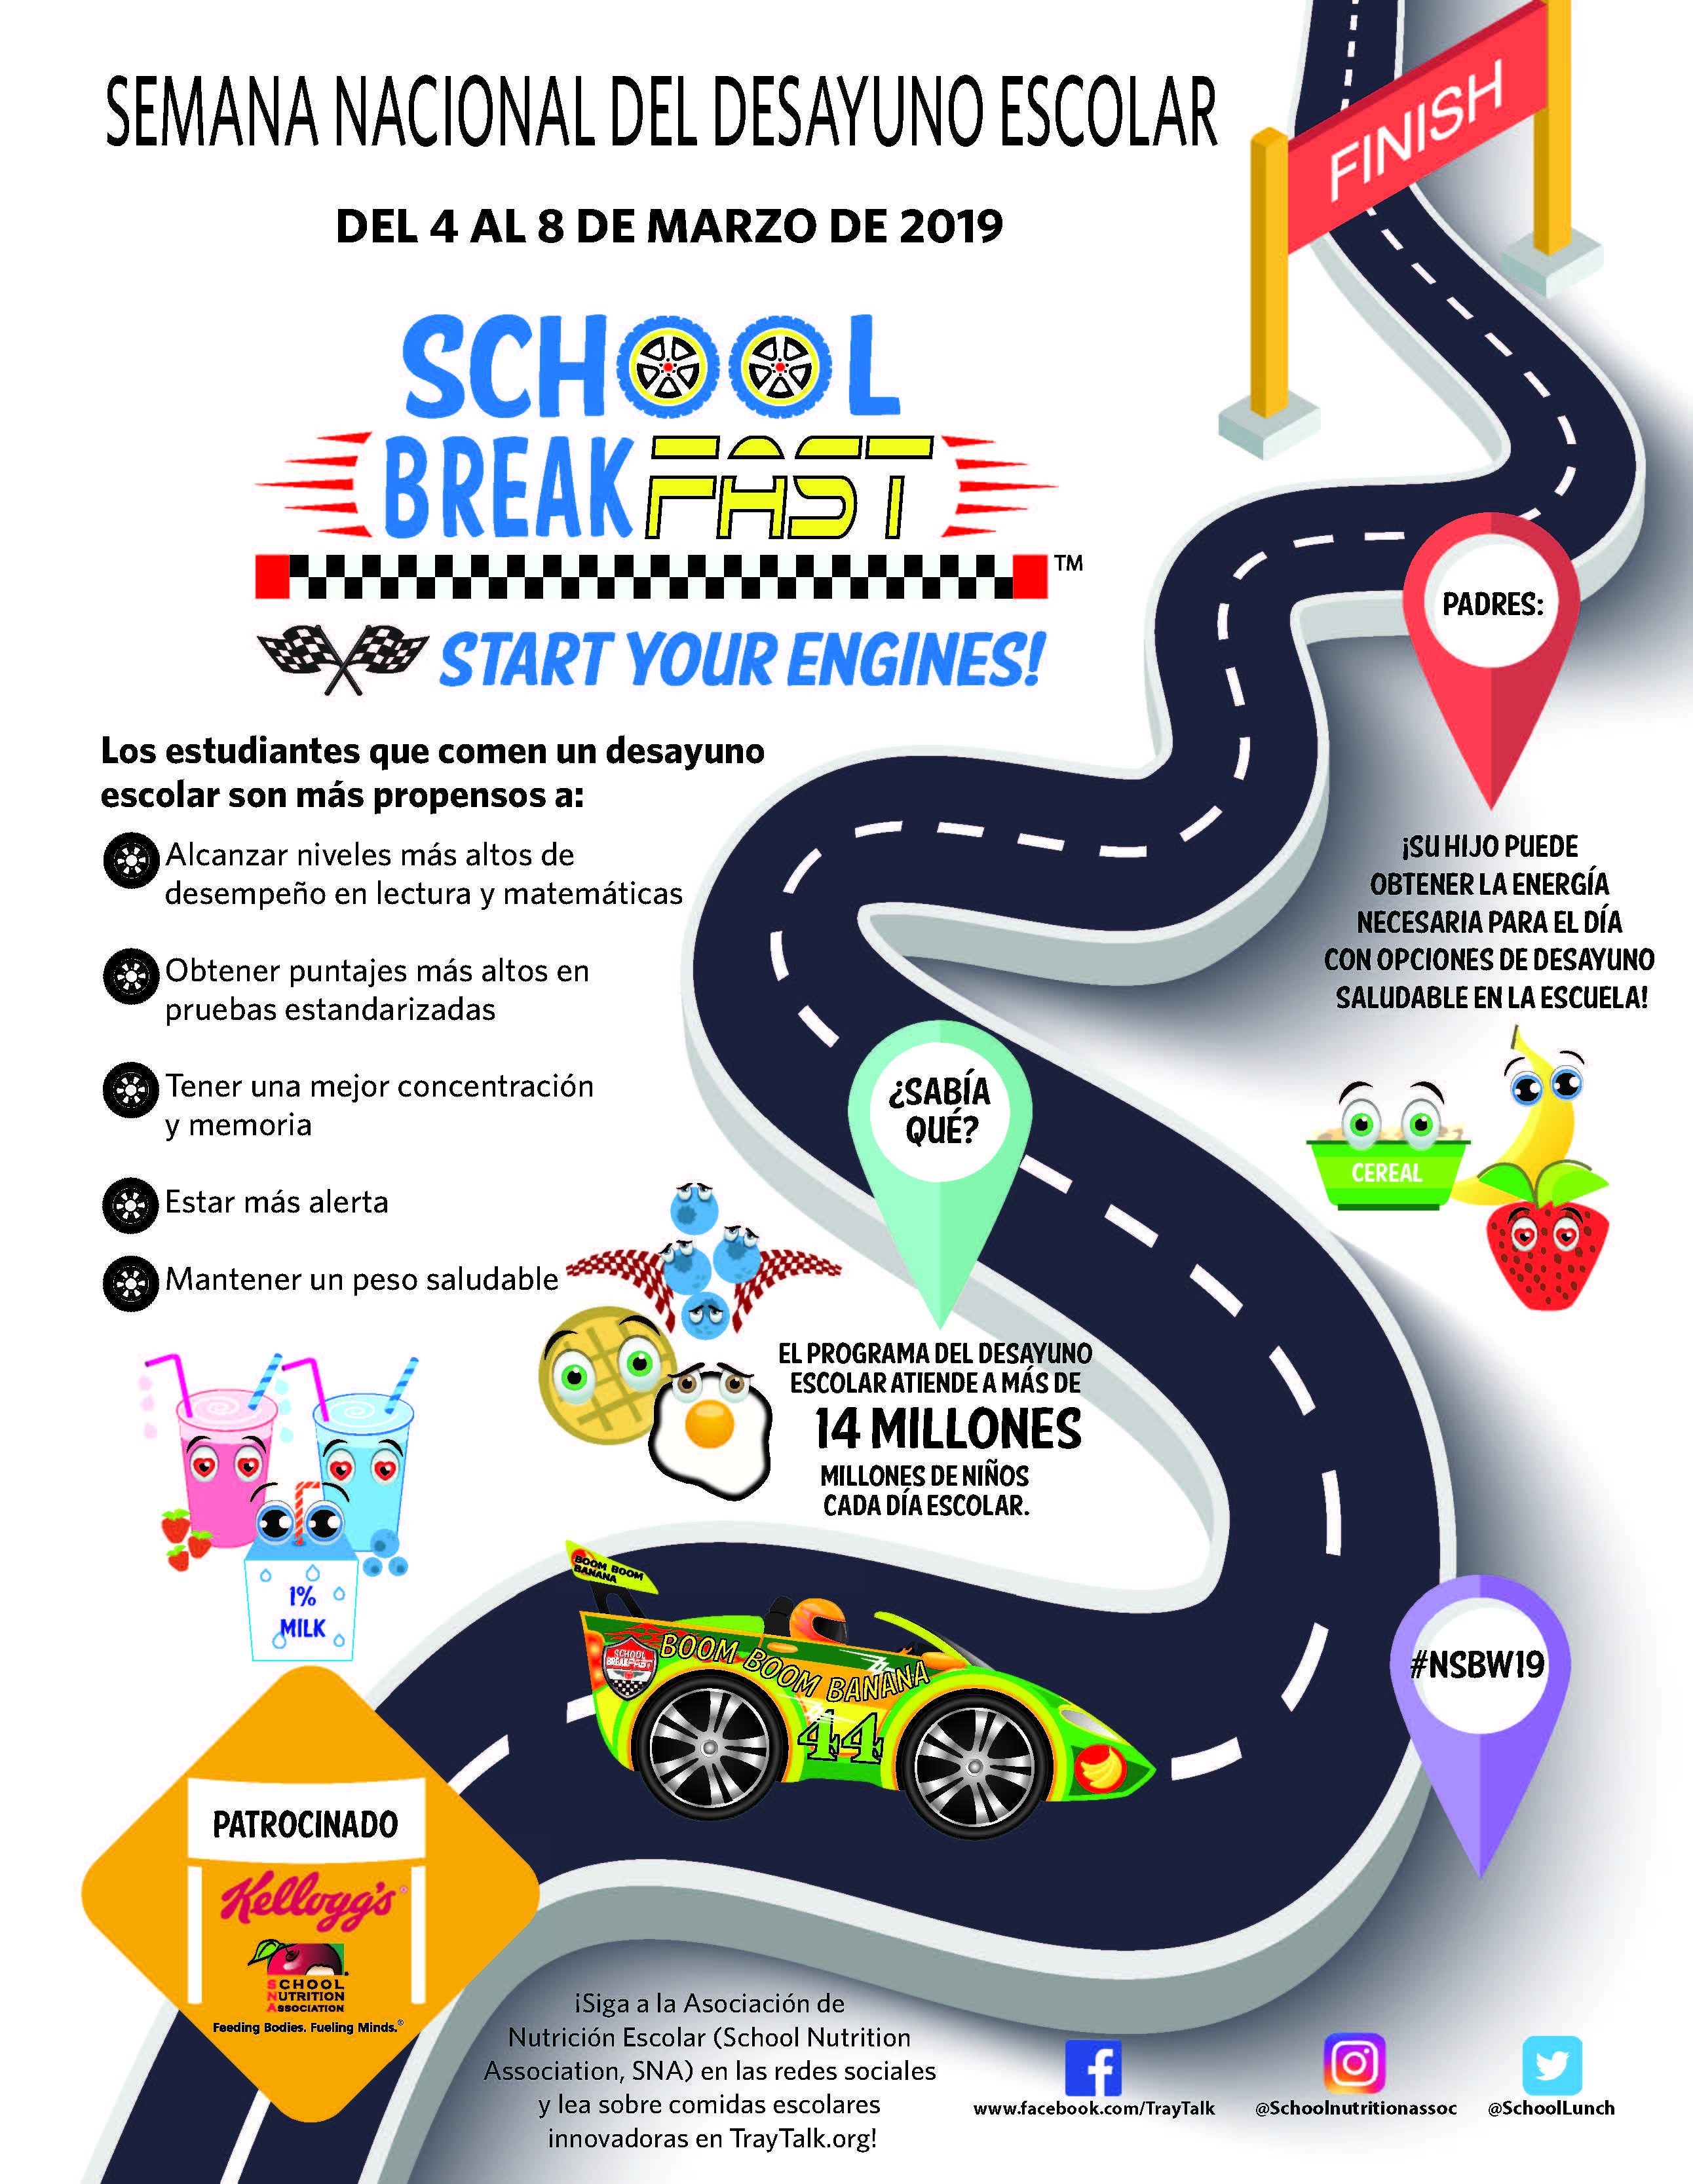 Infographic image- Spanish